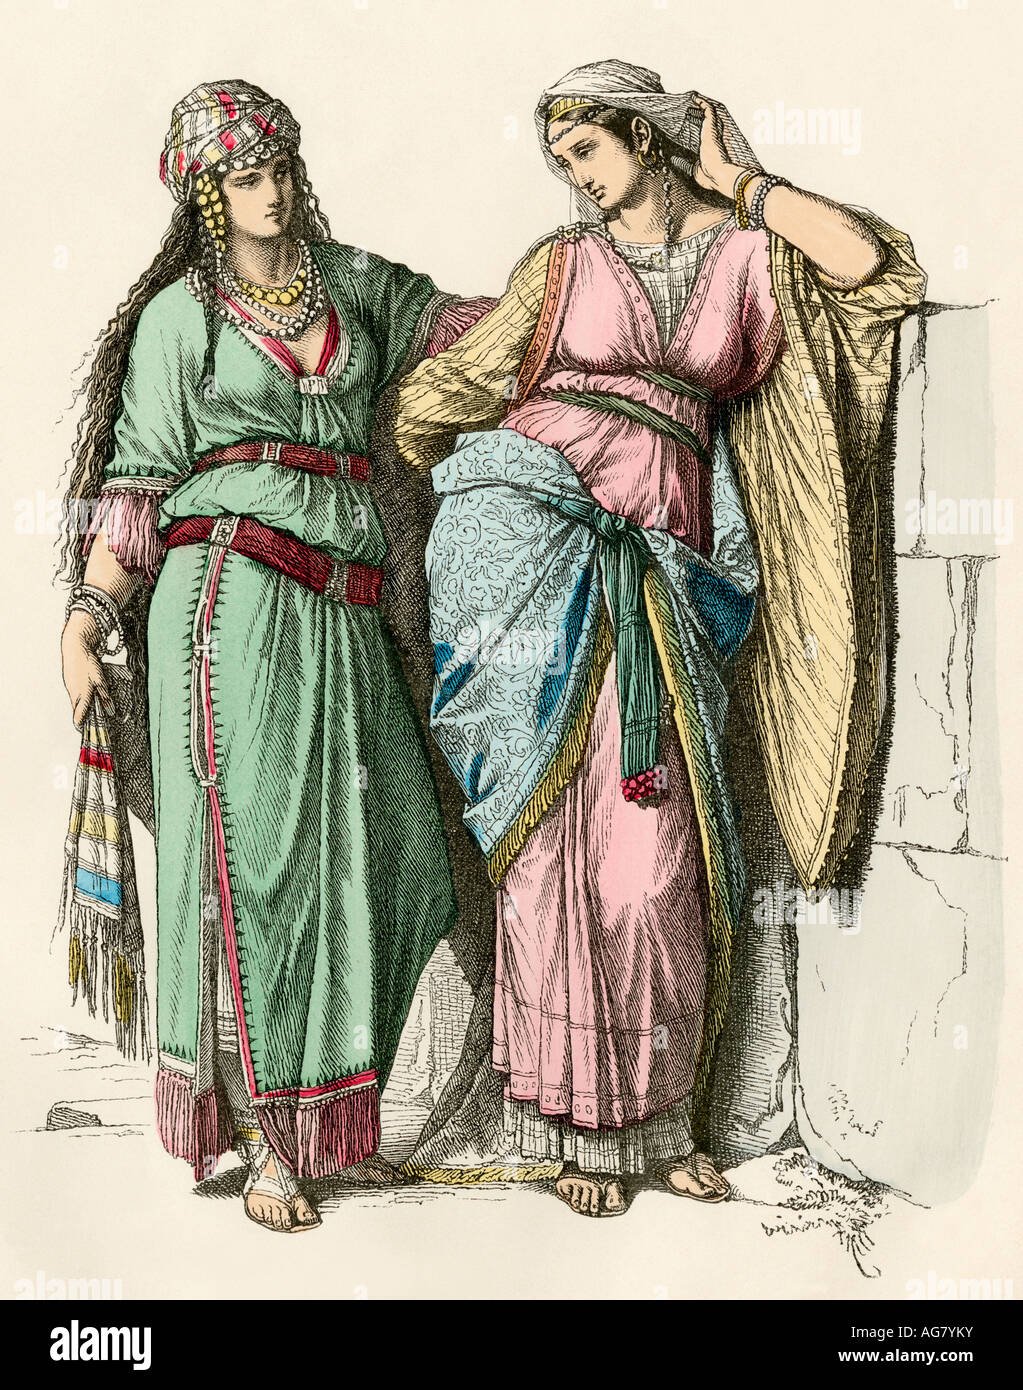 Upperclass Jewish women in ancient Israel. Hand-colored print - Stock Image